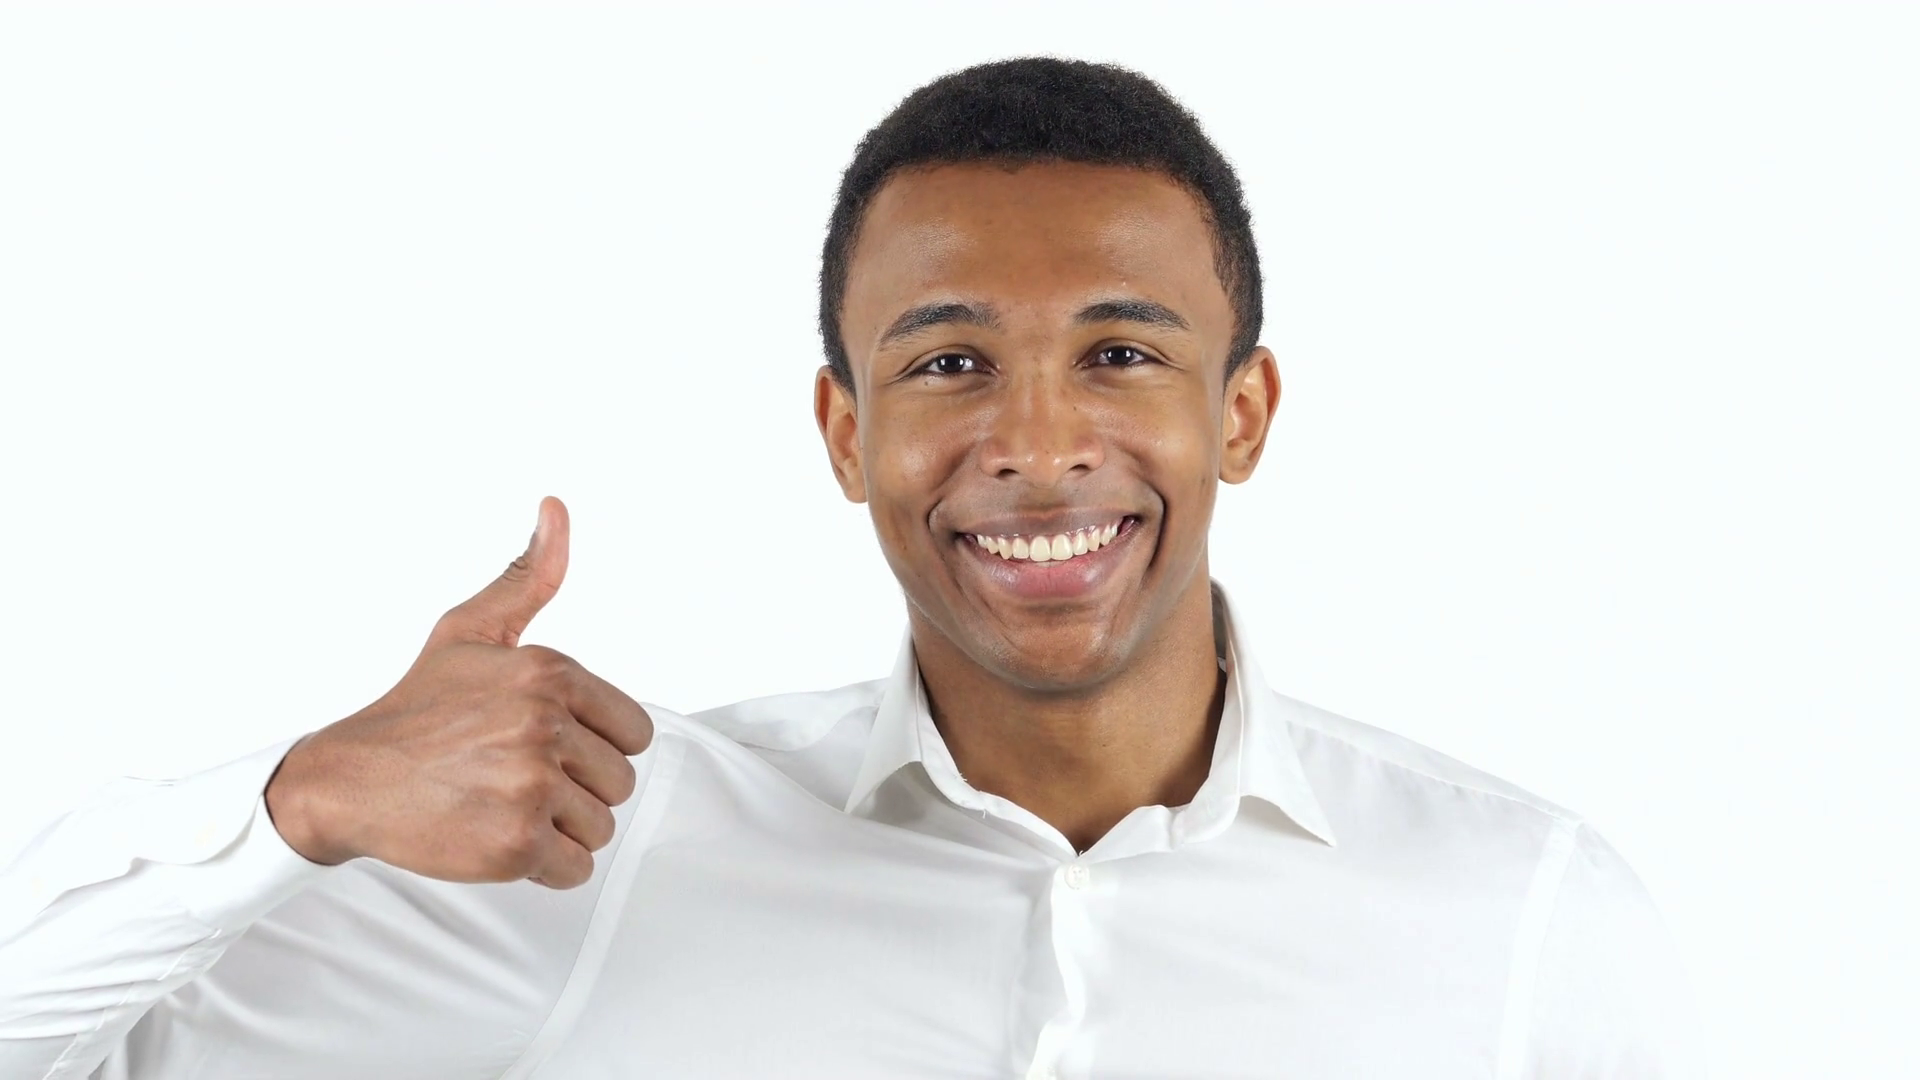 Thumbs Up by Black Man on White Background Stock Video Footage ...